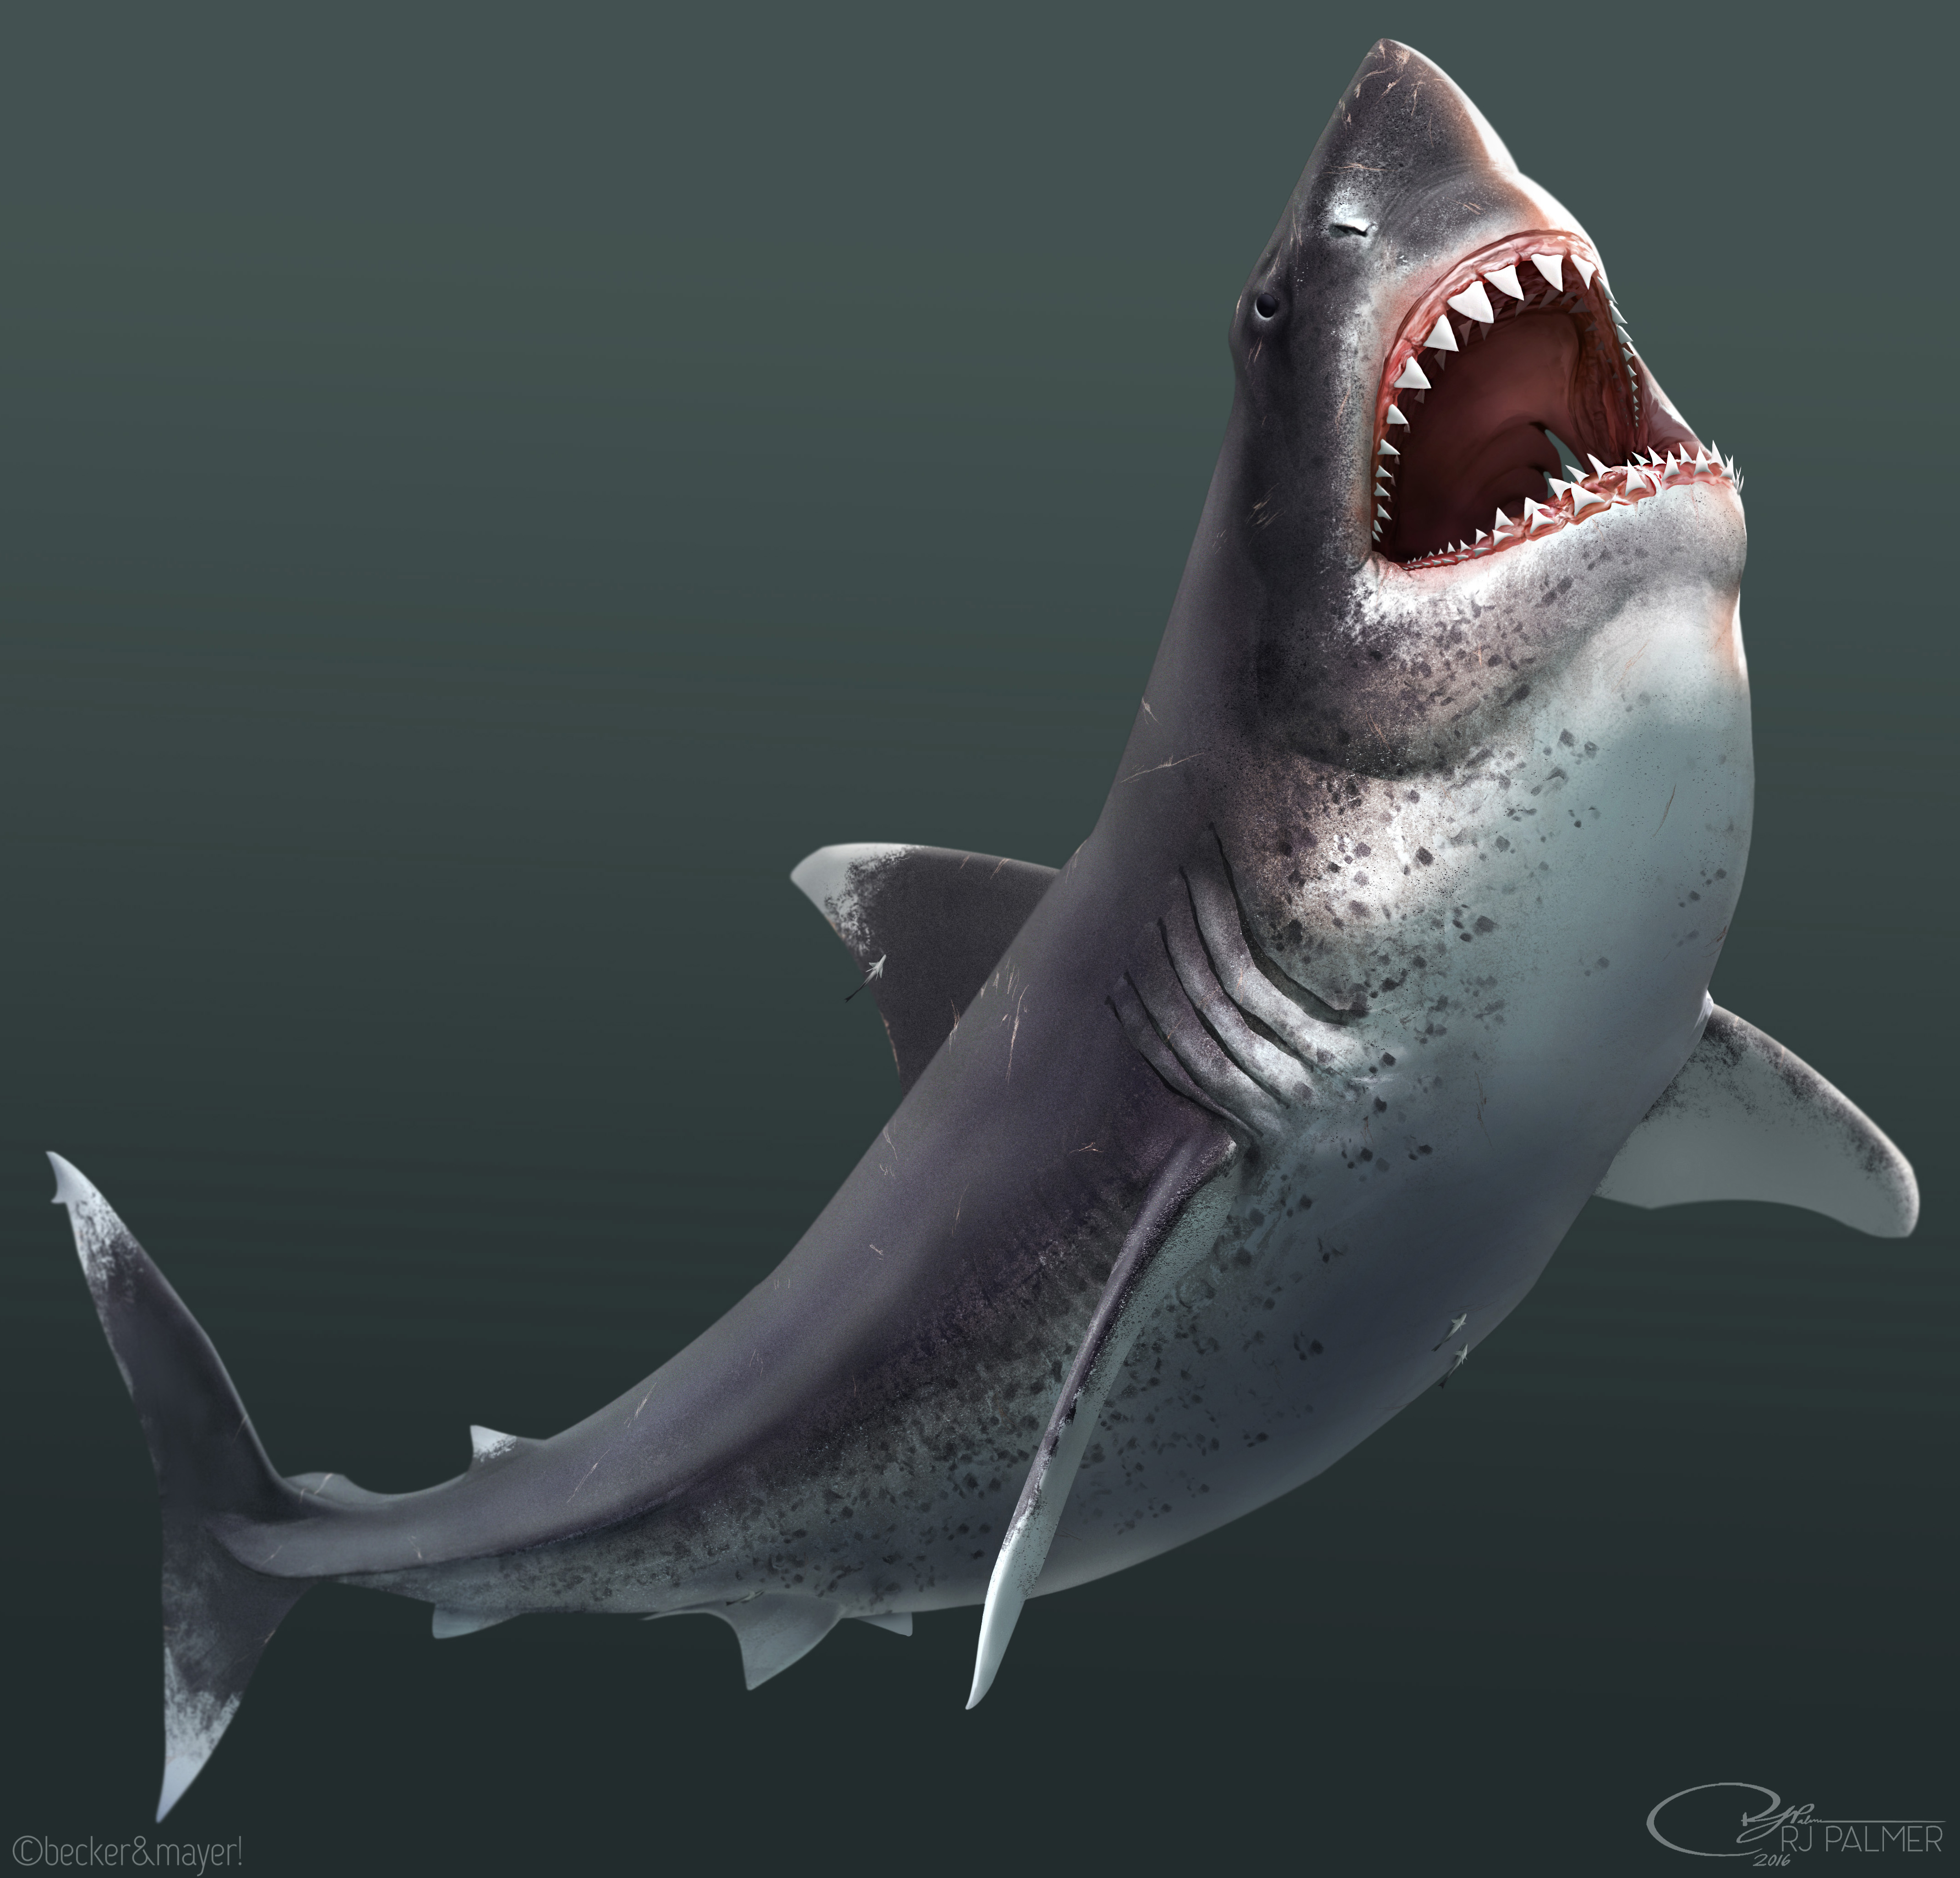 Megalodon dinopedia fandom powered by wikia megalodon altavistaventures Image collections